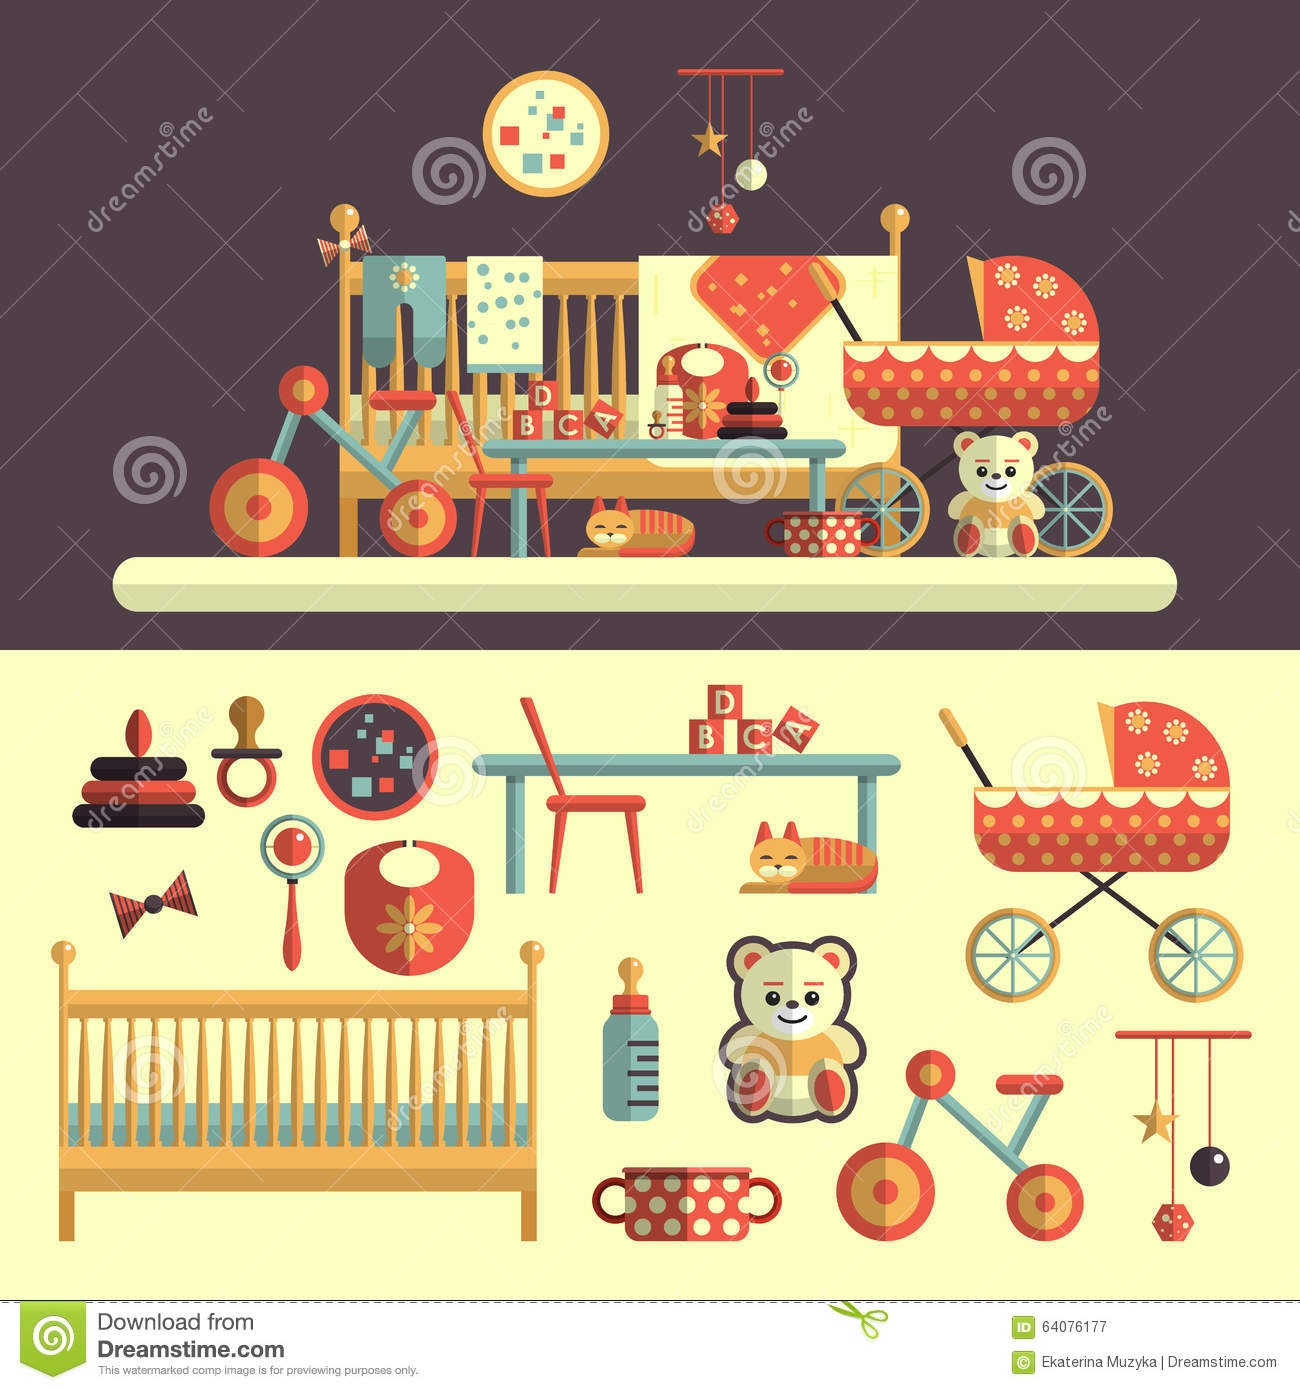 Kids Room Decoration Space Theme Vector Illustration: Interior Of Baby Room And Toys Set For Kids Stock Vector